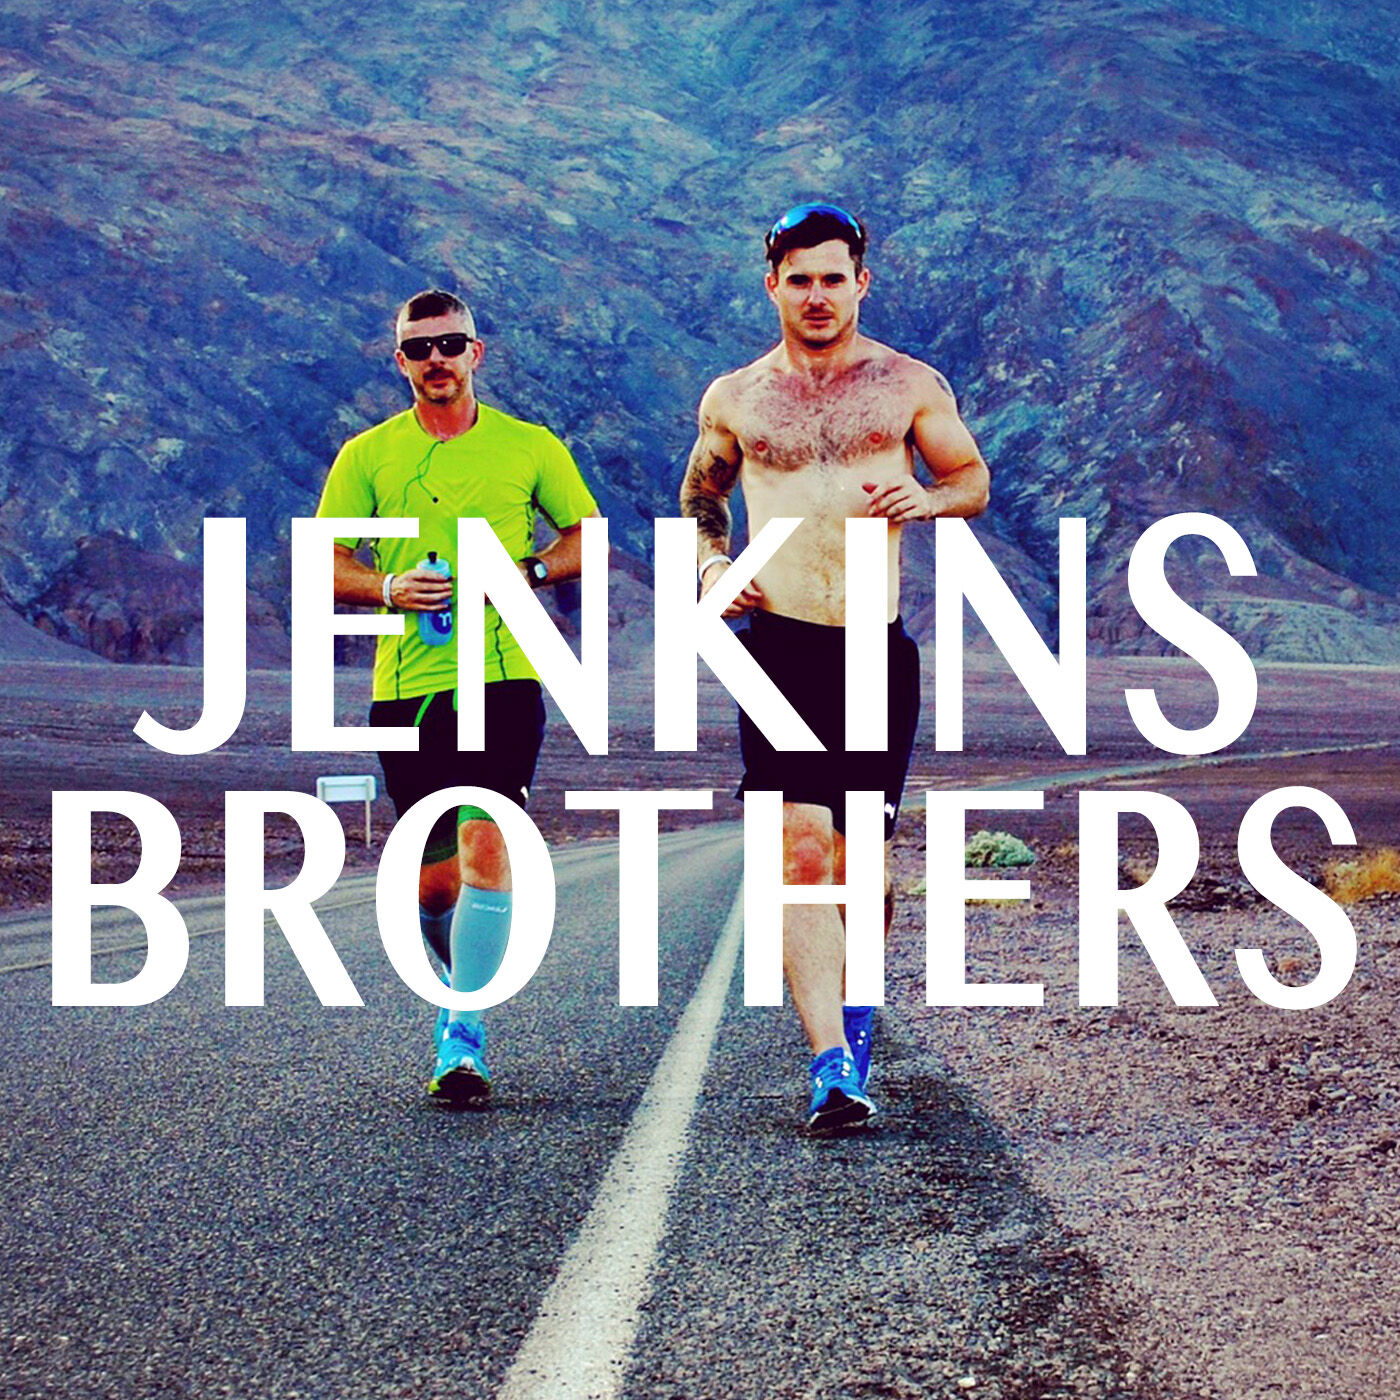 For the Lives of Others with the Jenkins Brothers